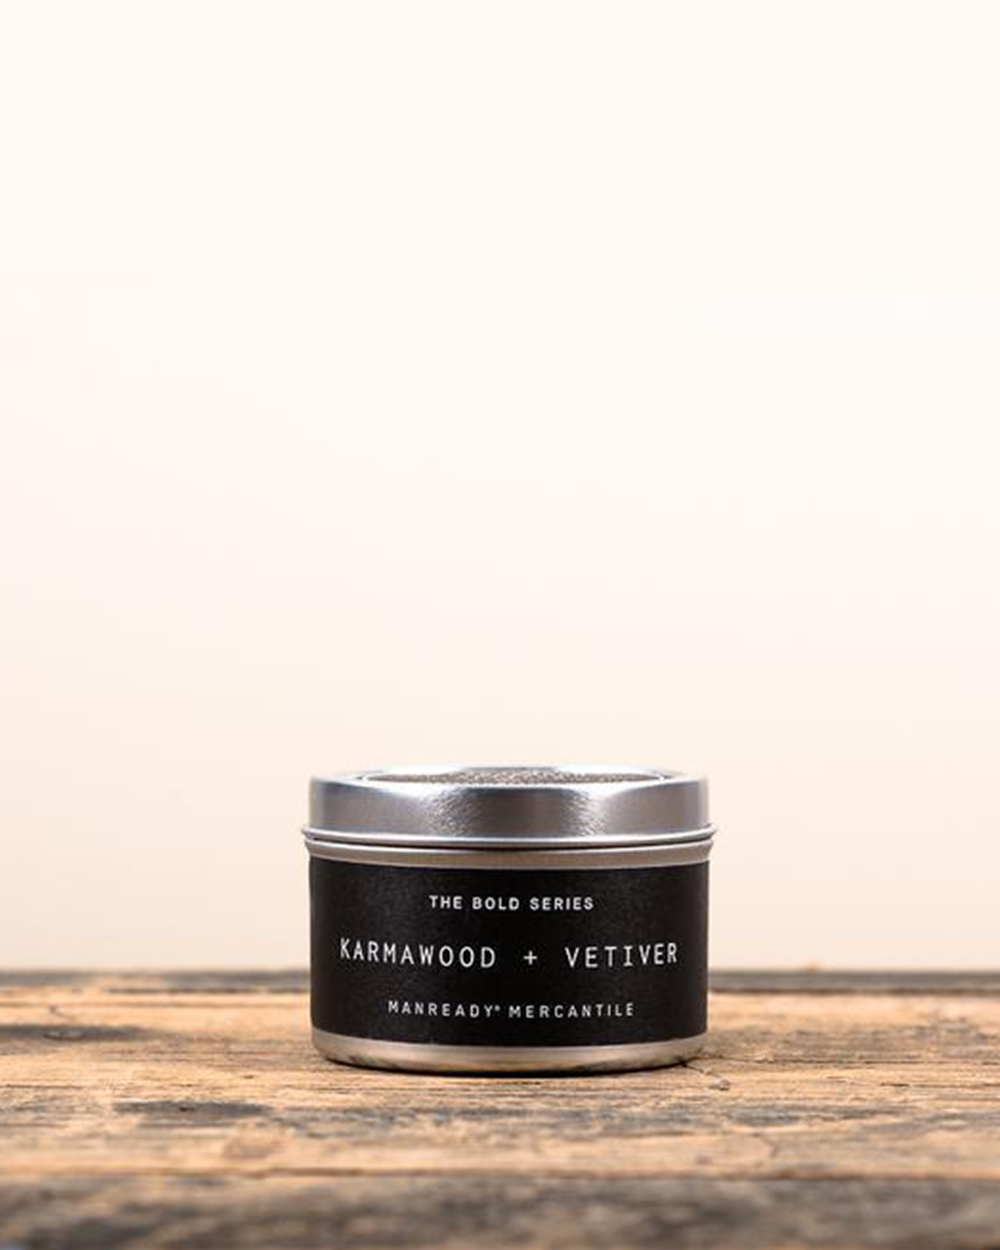 Karmawood + Vetiver Soy Travel Candle